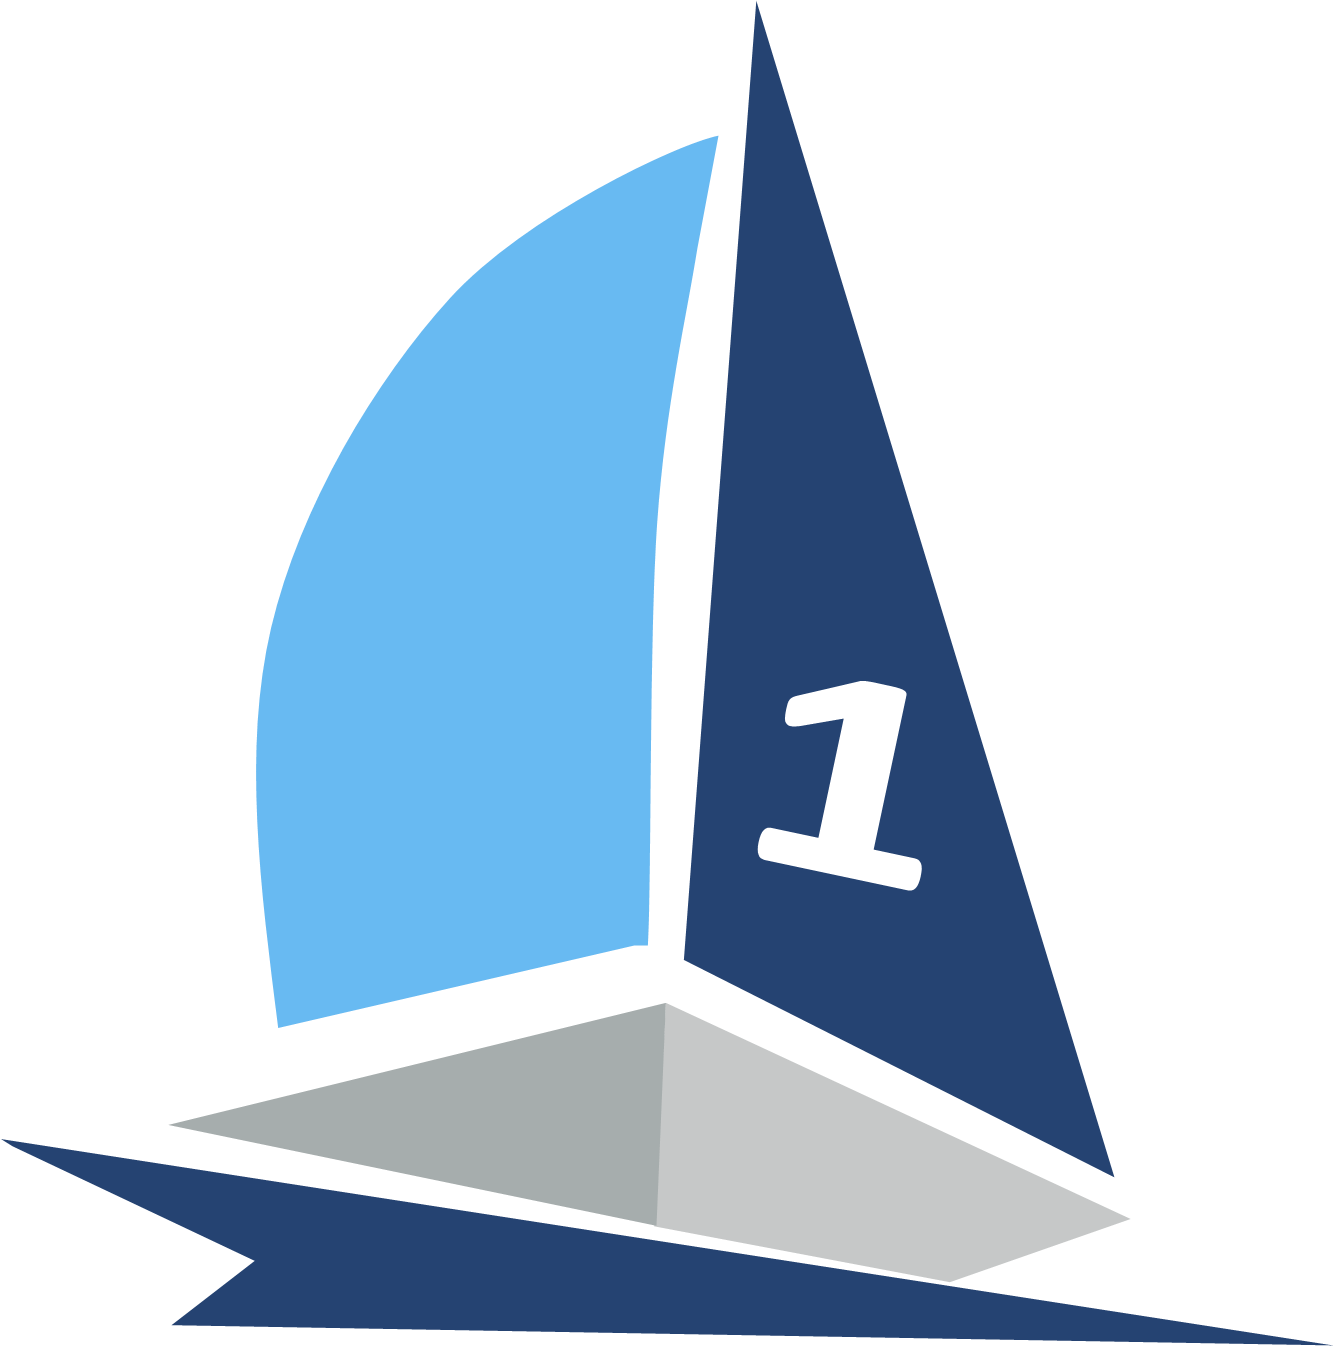 picture library stock Yacht clipart sailboat race. Sailing courses for children